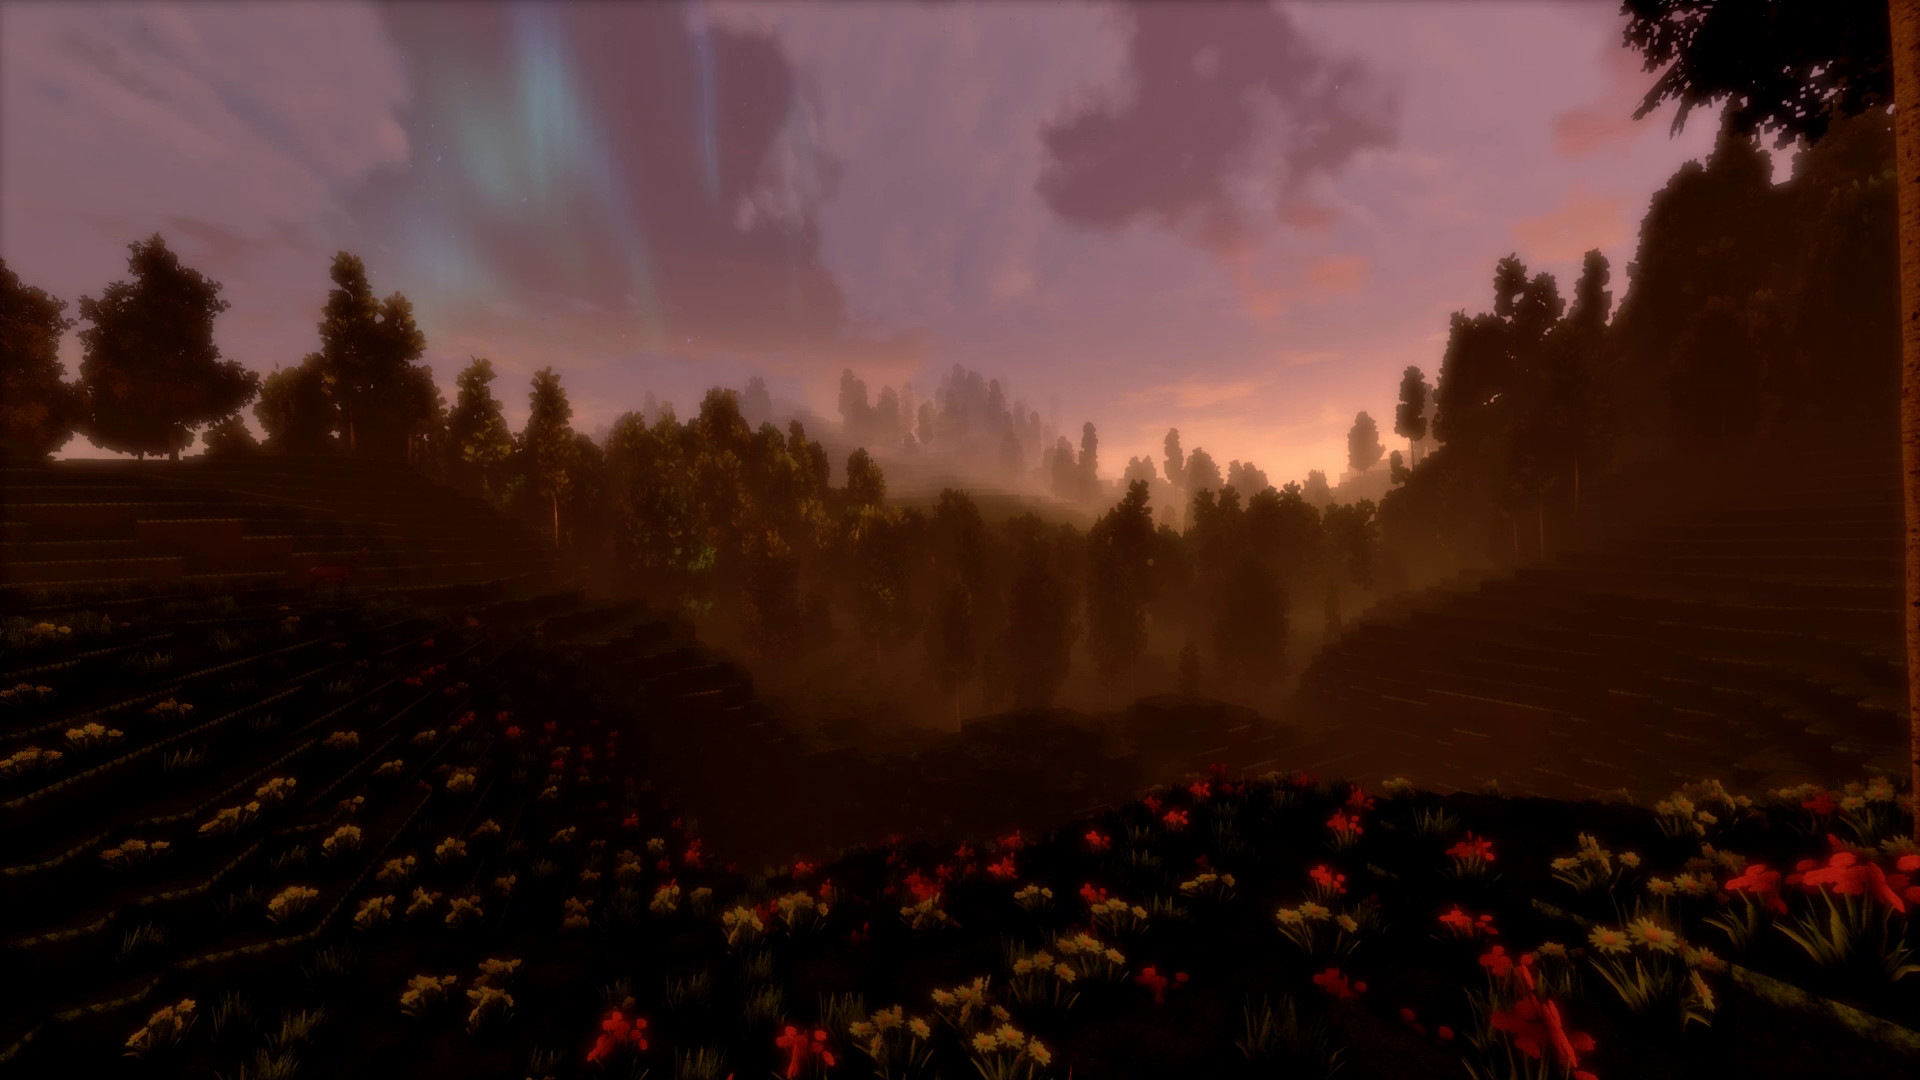 Cybubevr landscape with flowers